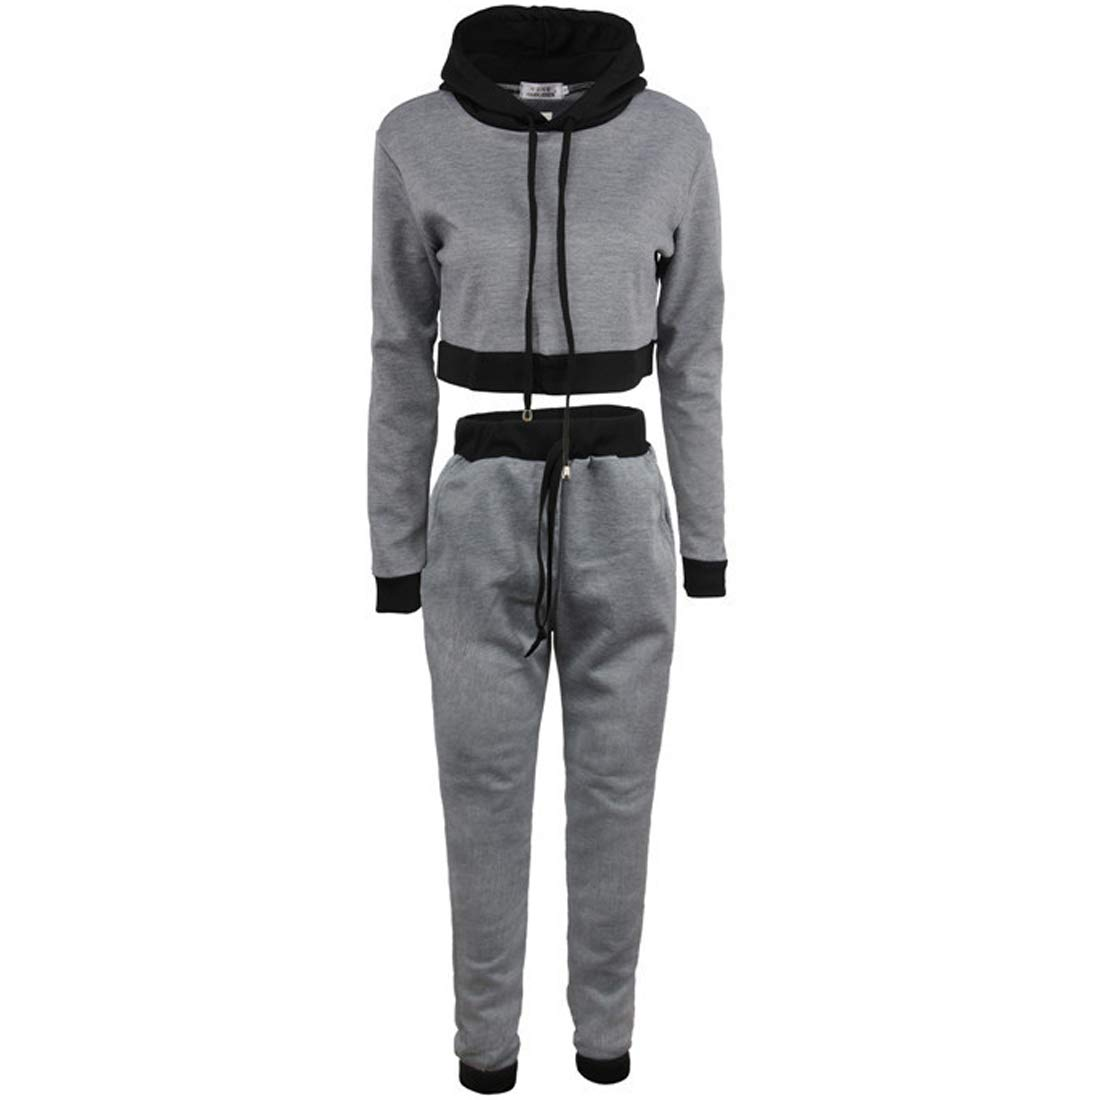 Fulision Women Drawstring Pullover Stitching Color Sportswear Two Piece Hoodie Fulision Co. Ltd